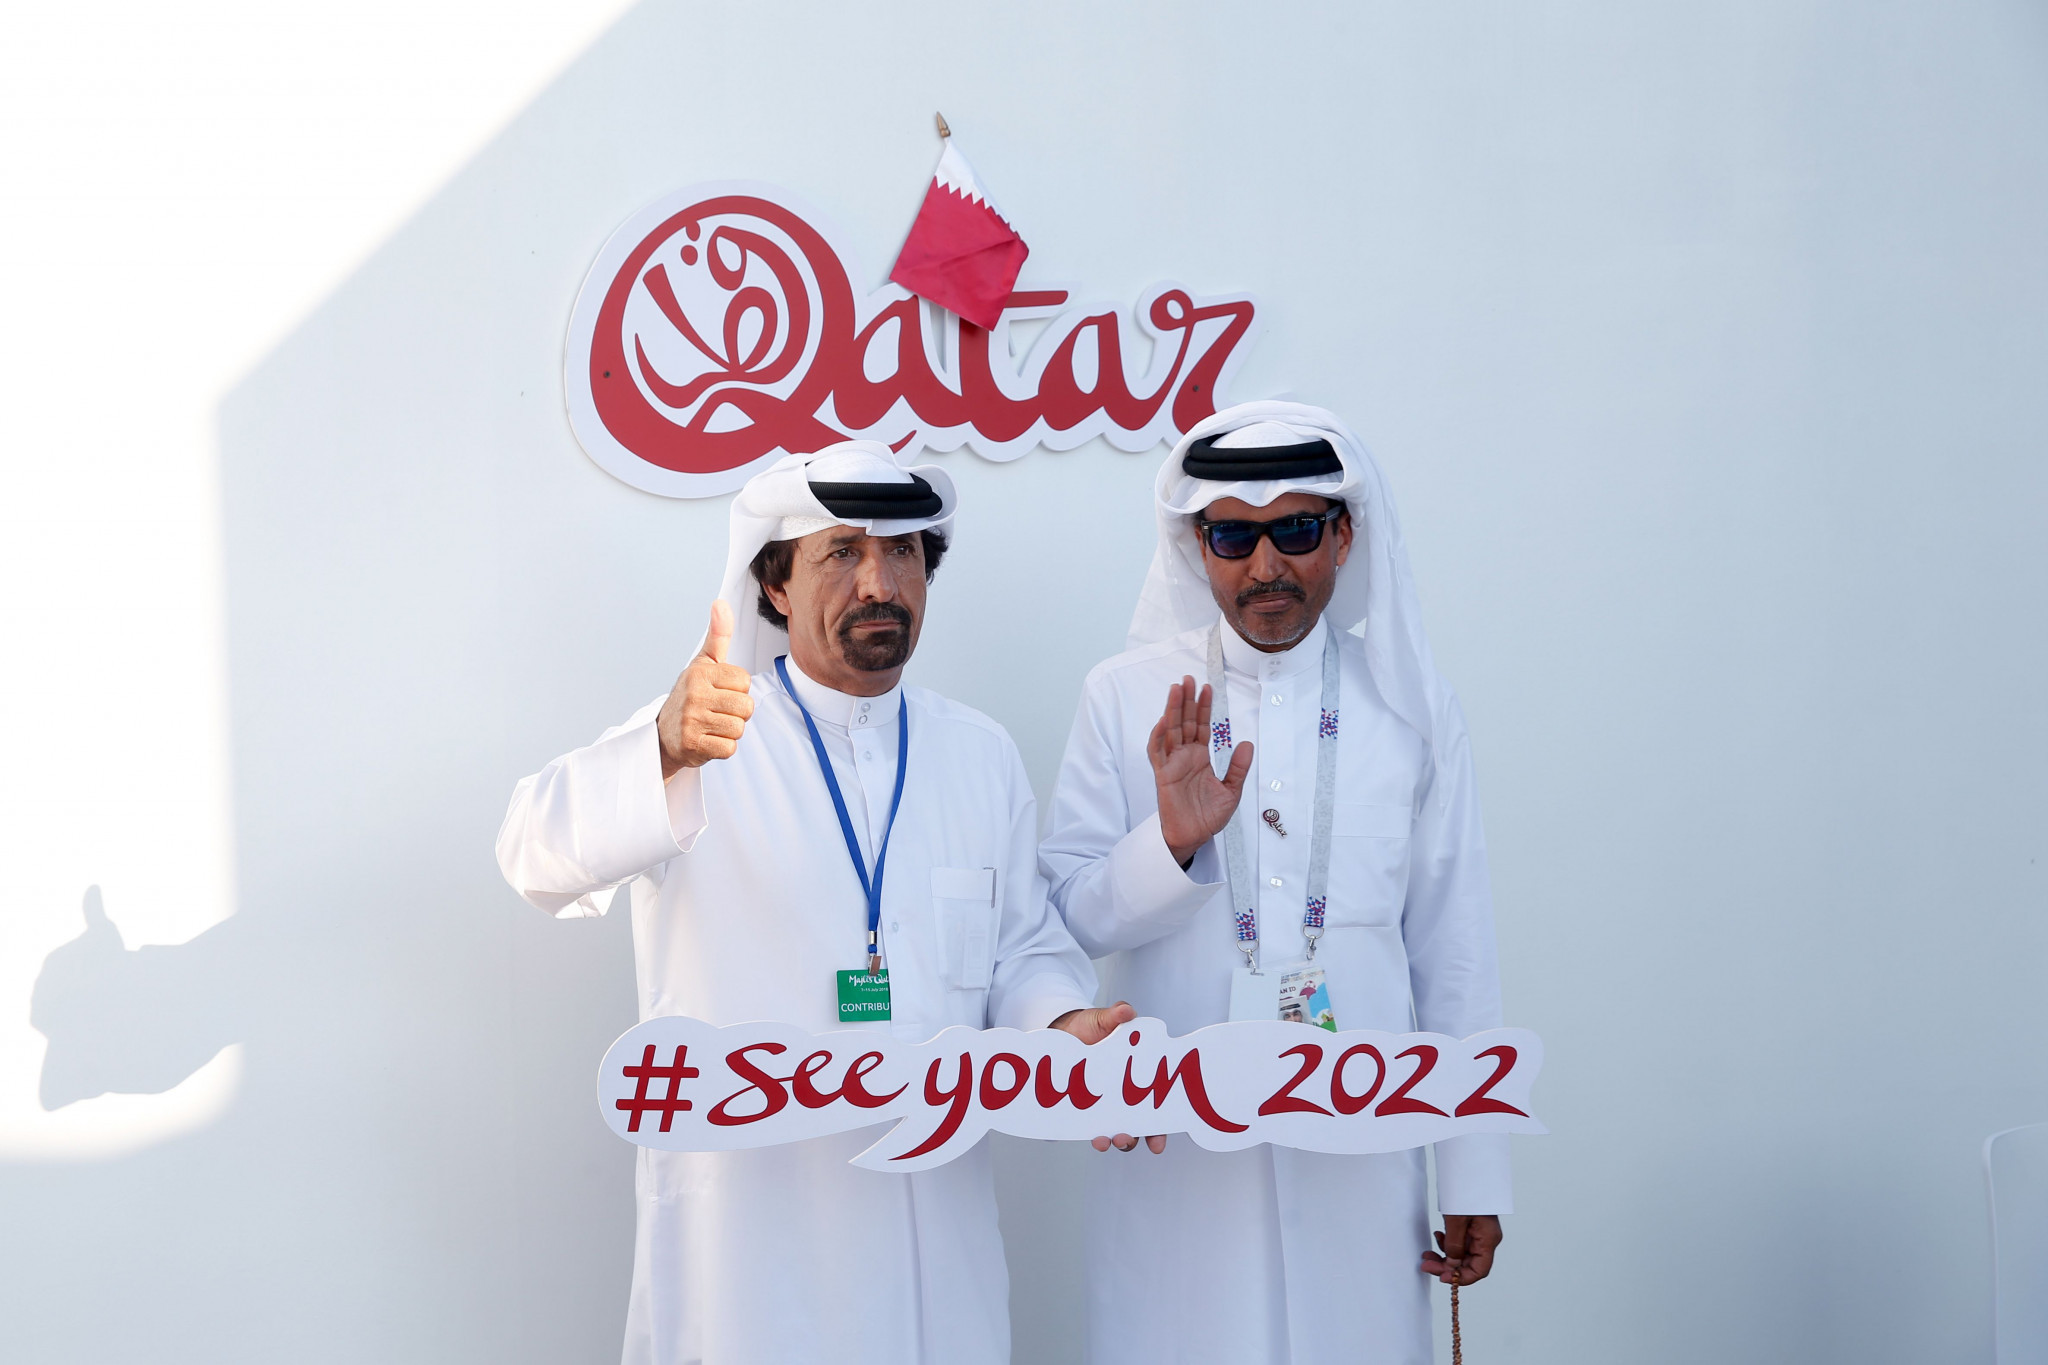 Qatar 2022 accused of running secret campaign to sabotage rivals in race for FIFA World Cup